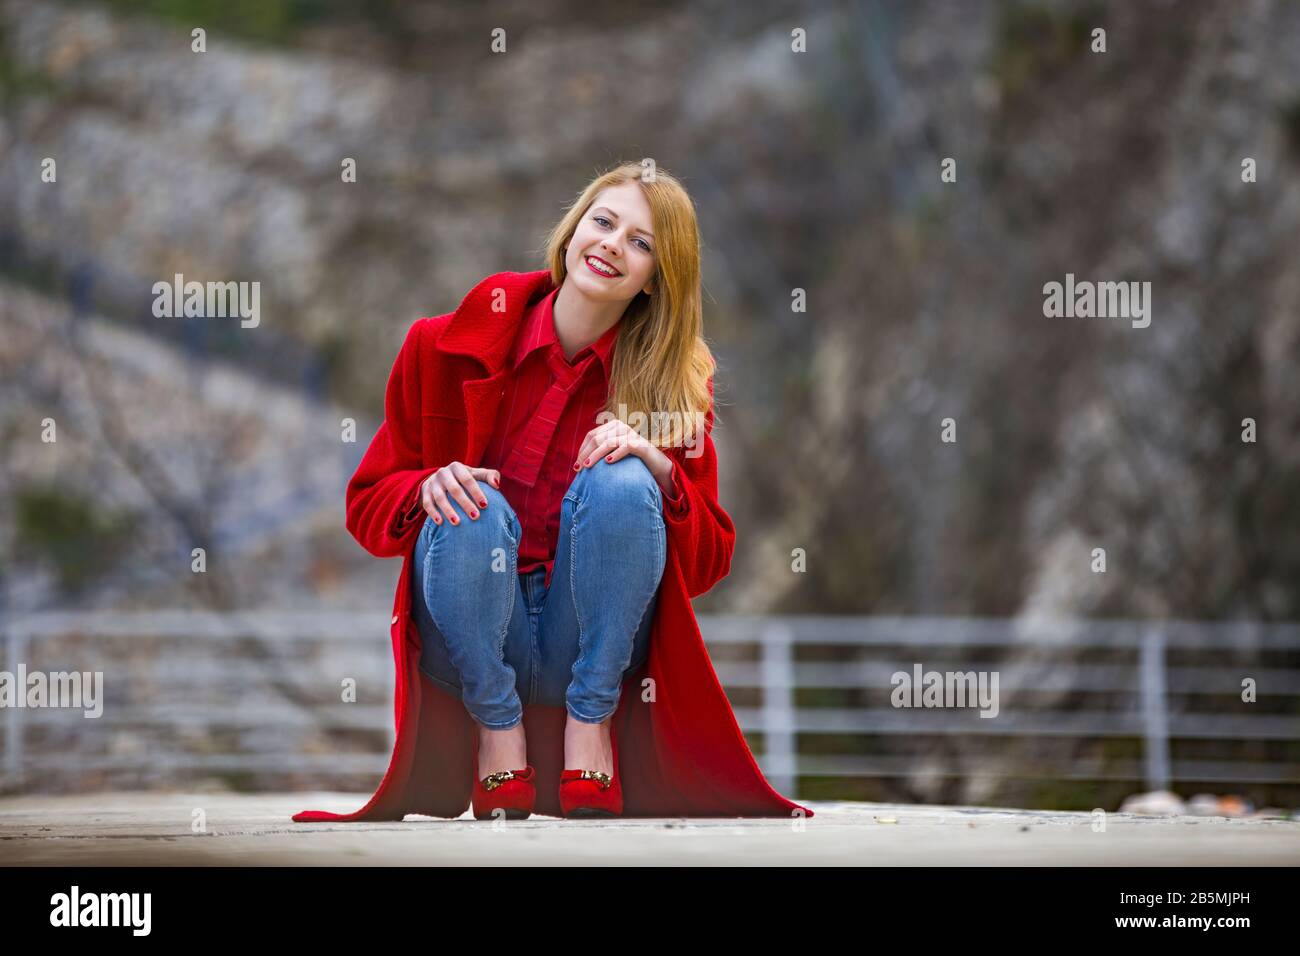 Teenager girl is smiling at camera eyeshot eye-eyes contact isolated from background squatting wearing Blue-denim pants Red coat and pumps highheels Stock Photo